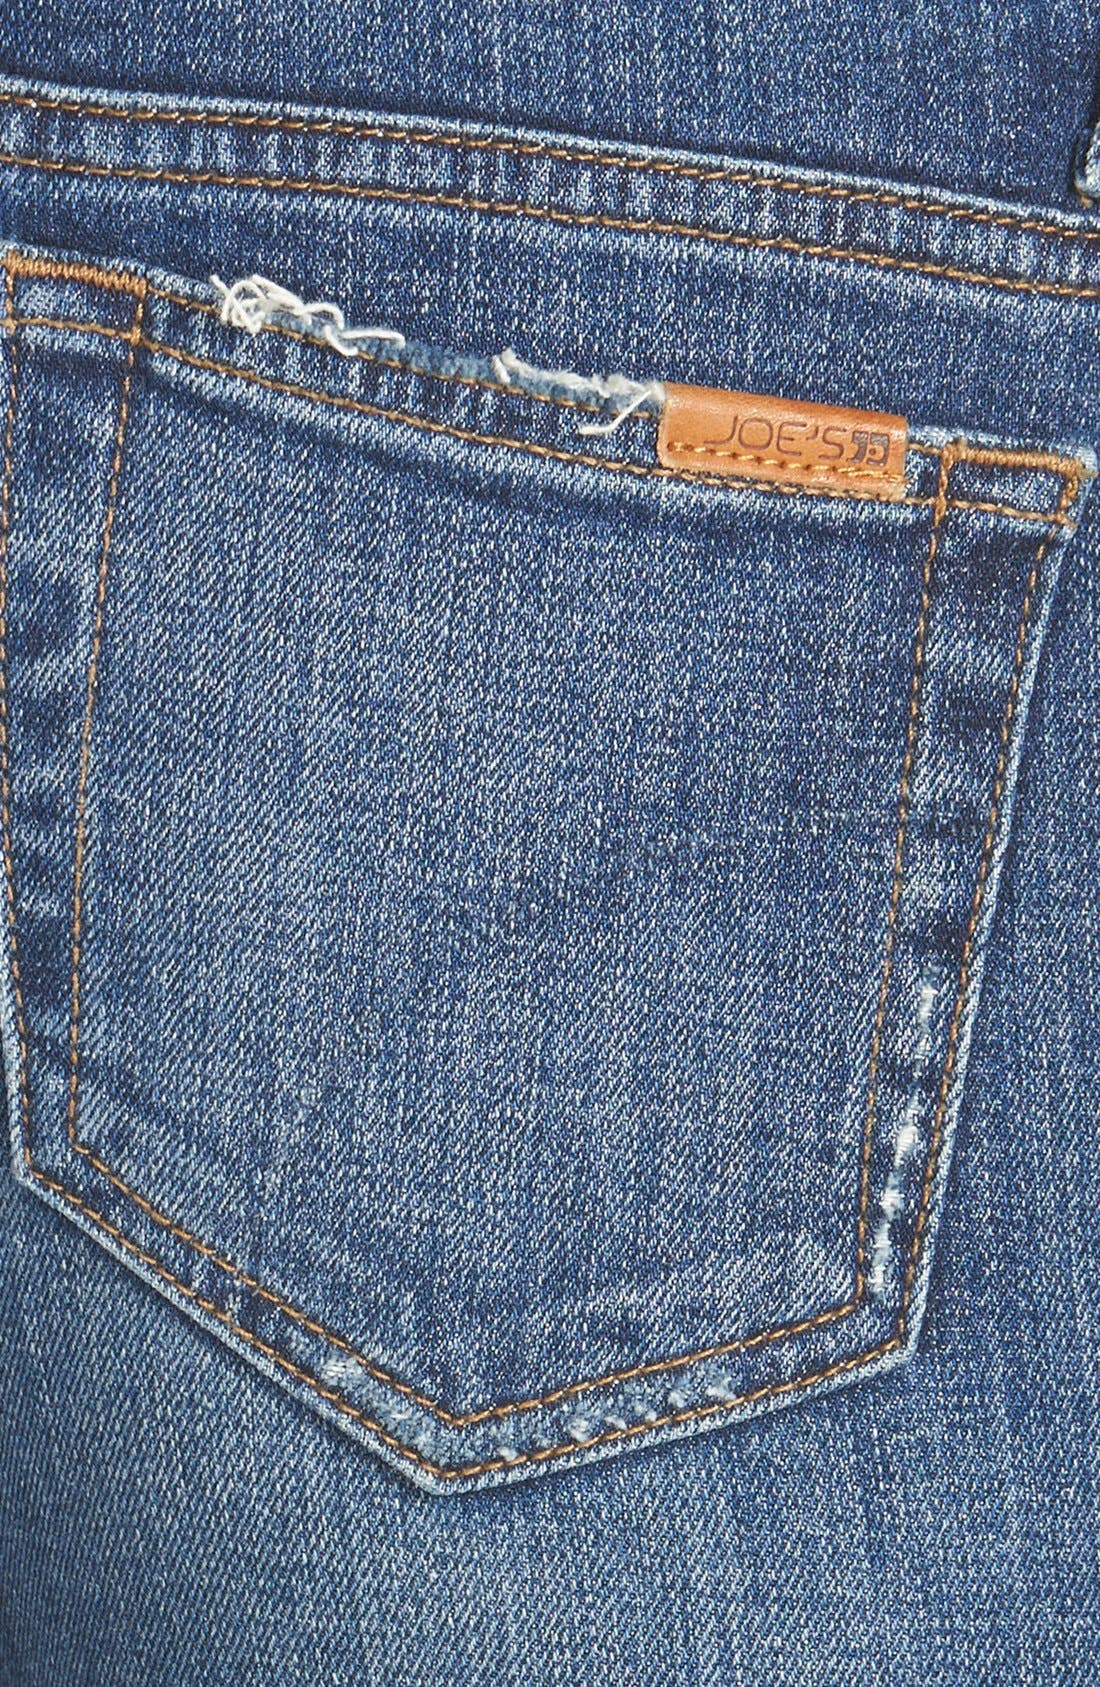 'The Icon' Skinny Jeans,                             Alternate thumbnail 7, color,                             410